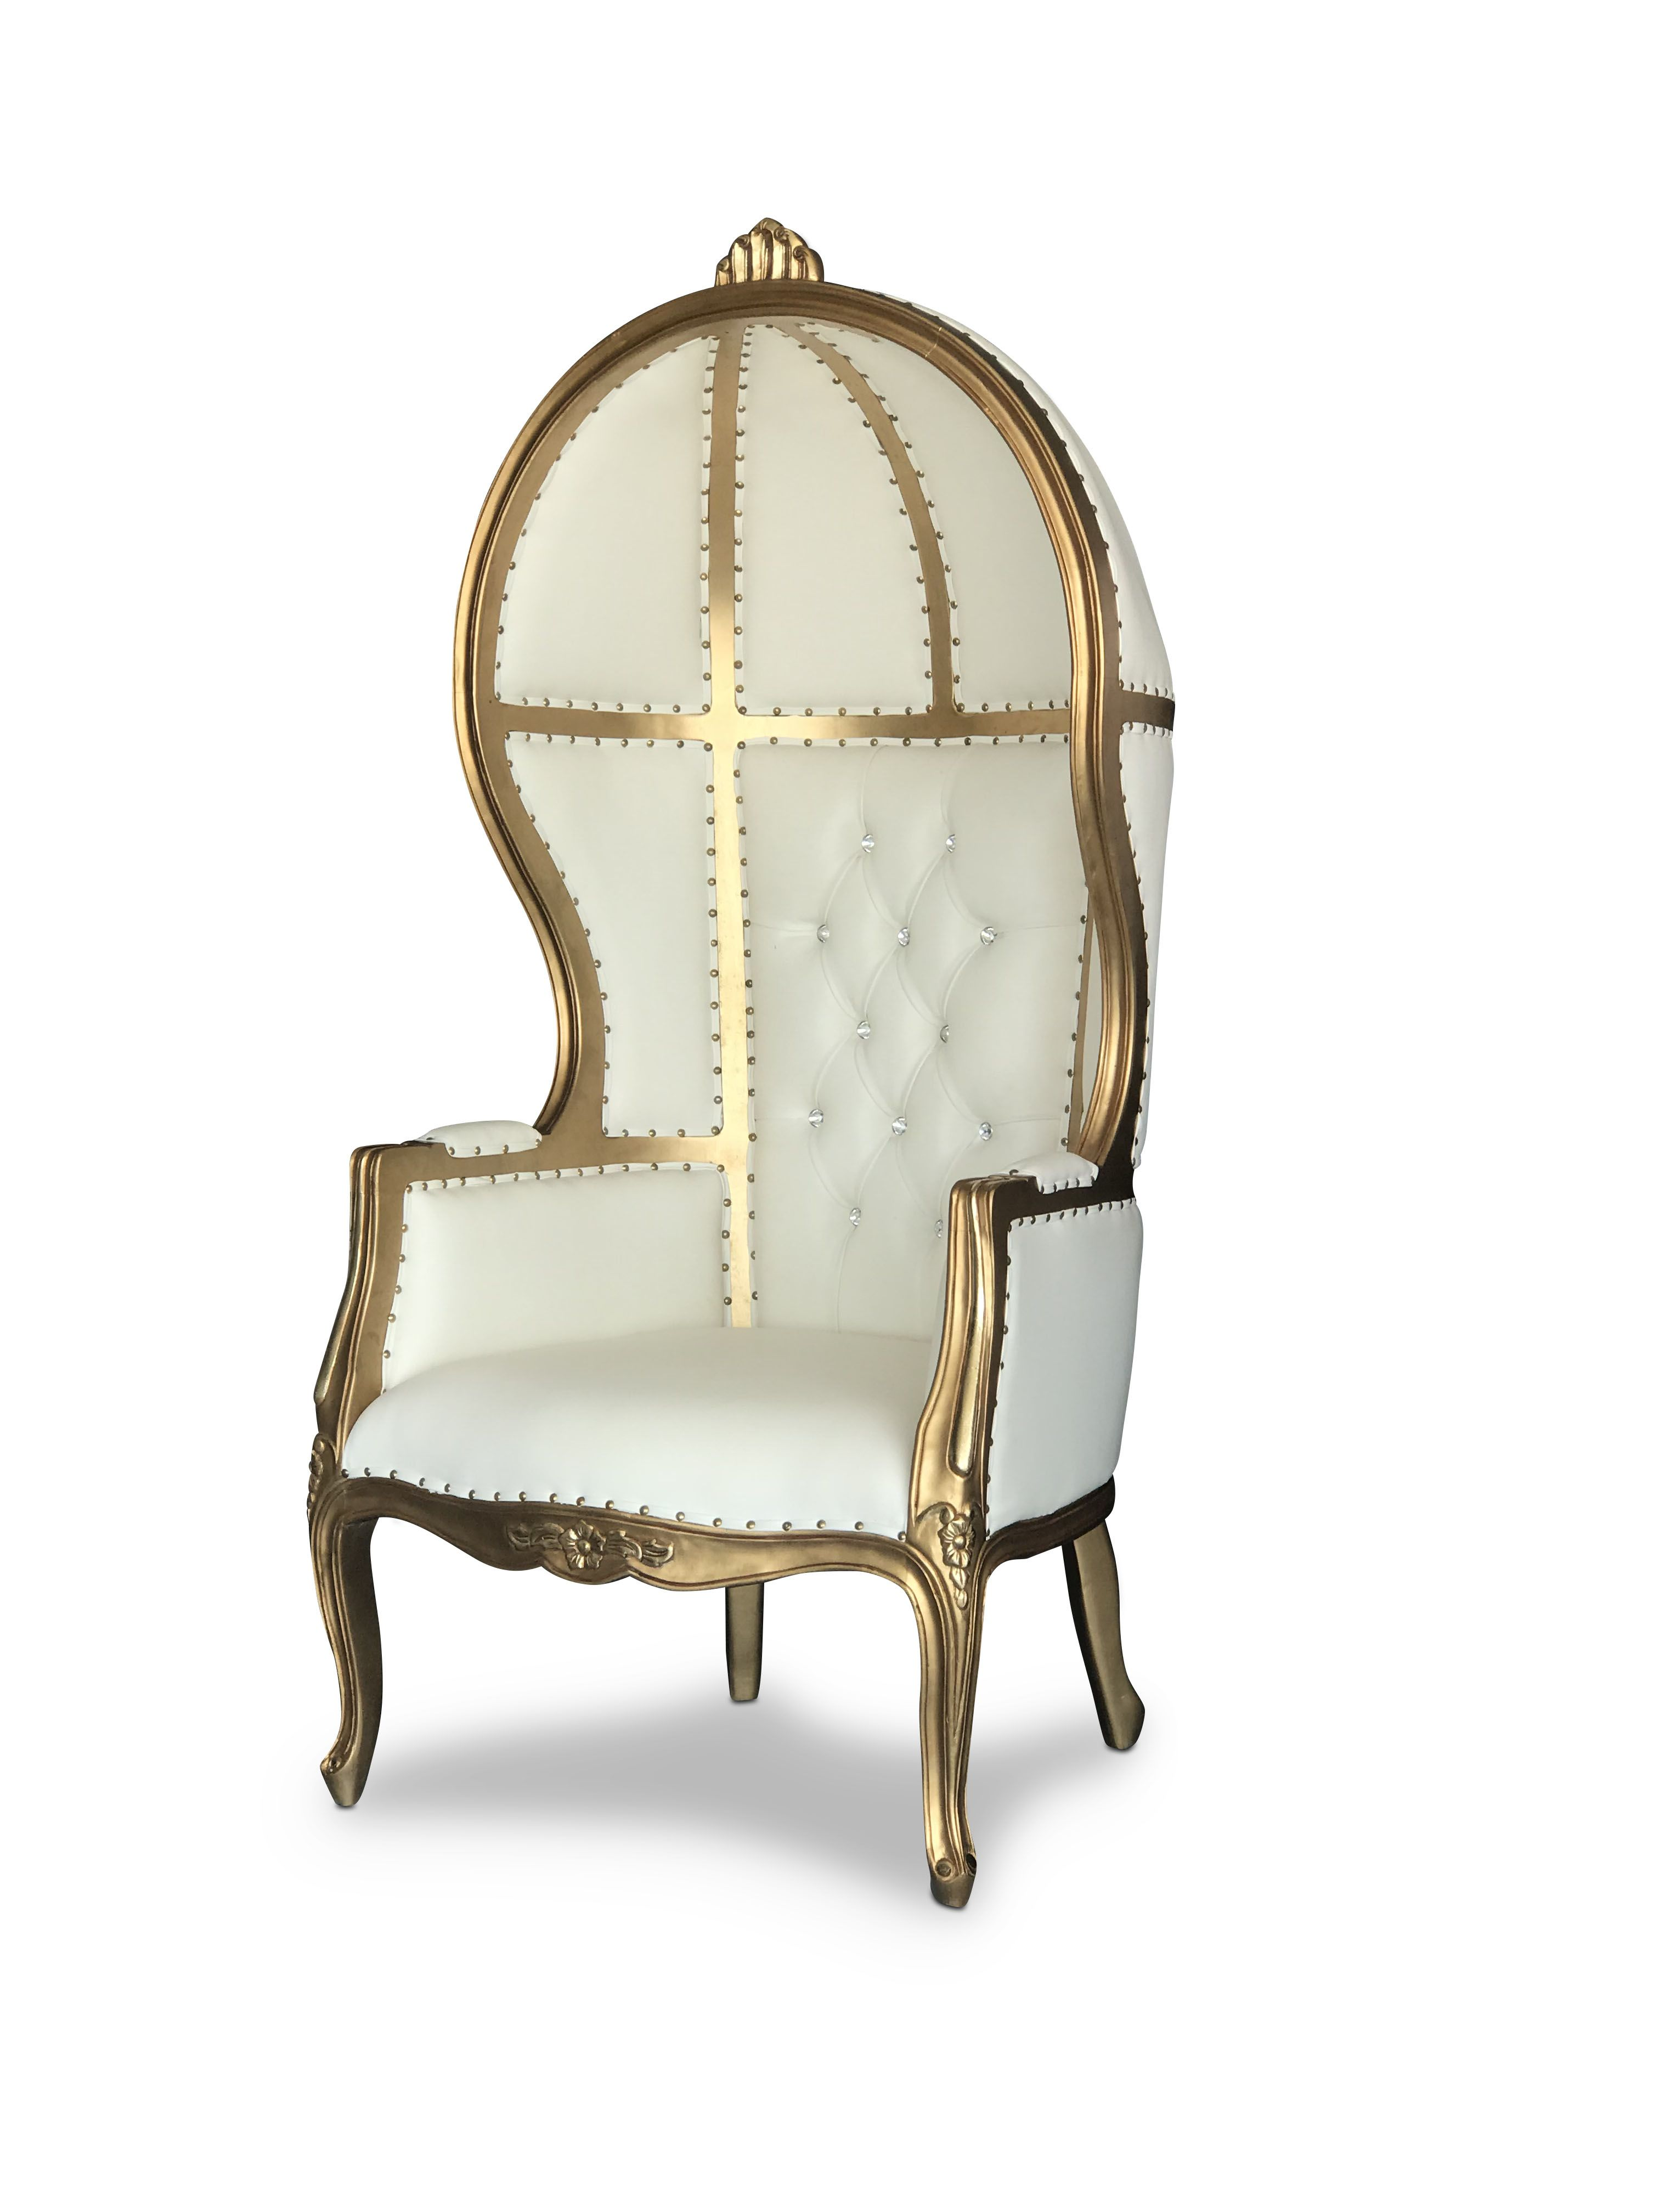 Chiseled Perfections Royal King Queen Throne Chairs Baroque Inspired Furniture Throne Chair Furniture Chair